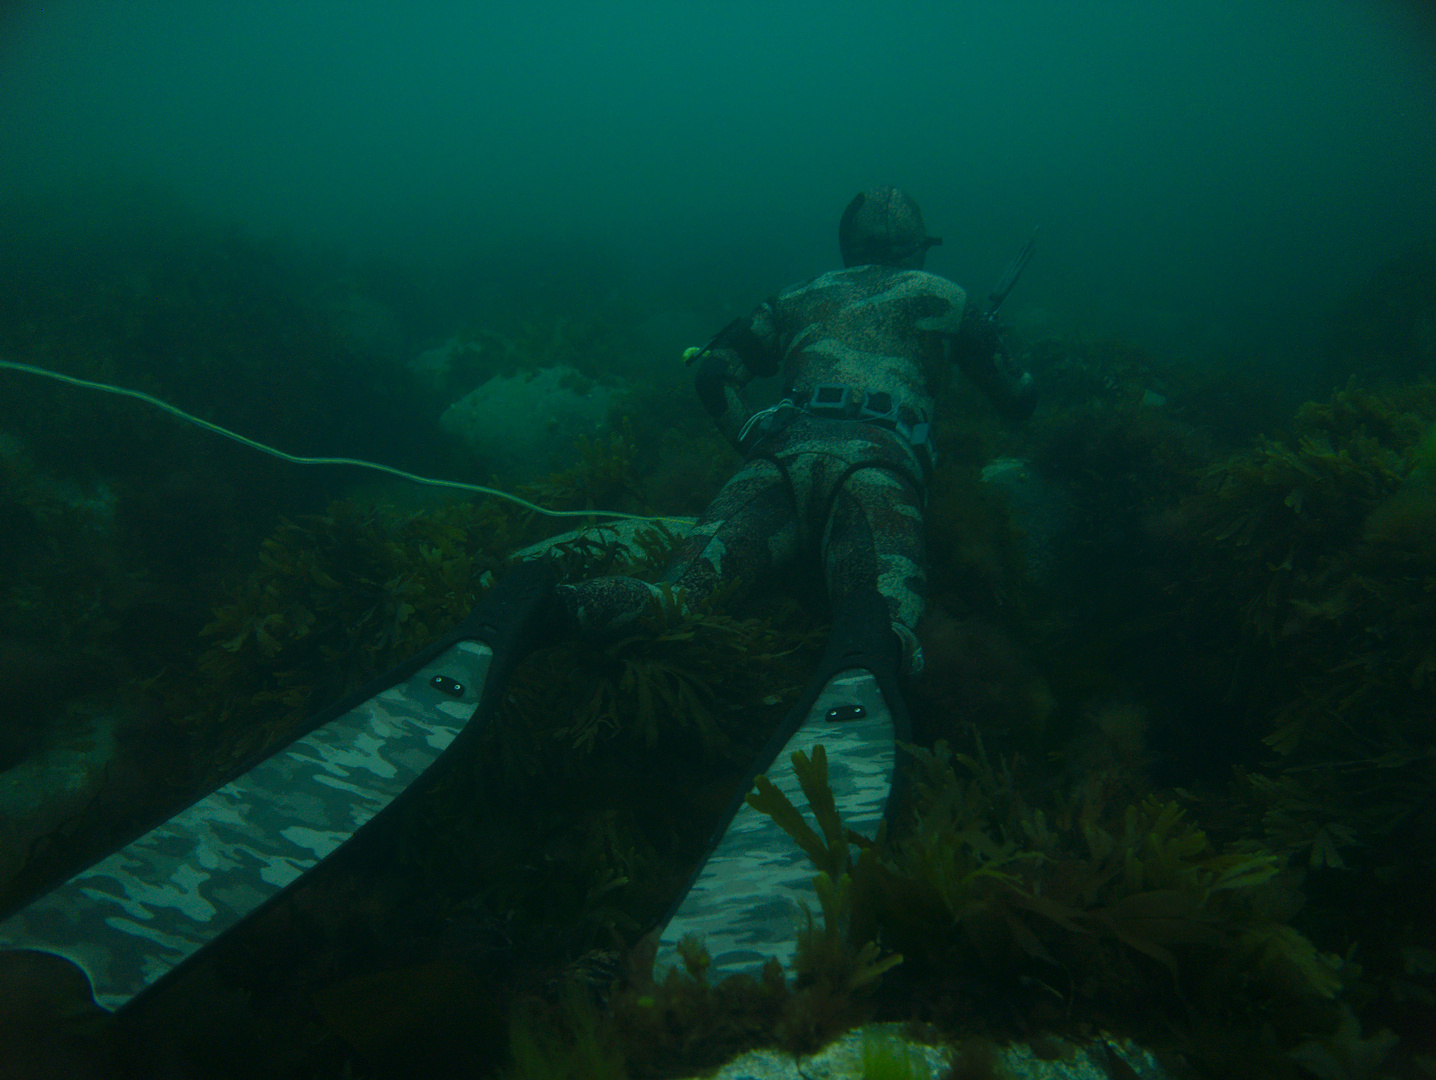 spearfishing underwater camouflage sea hunting